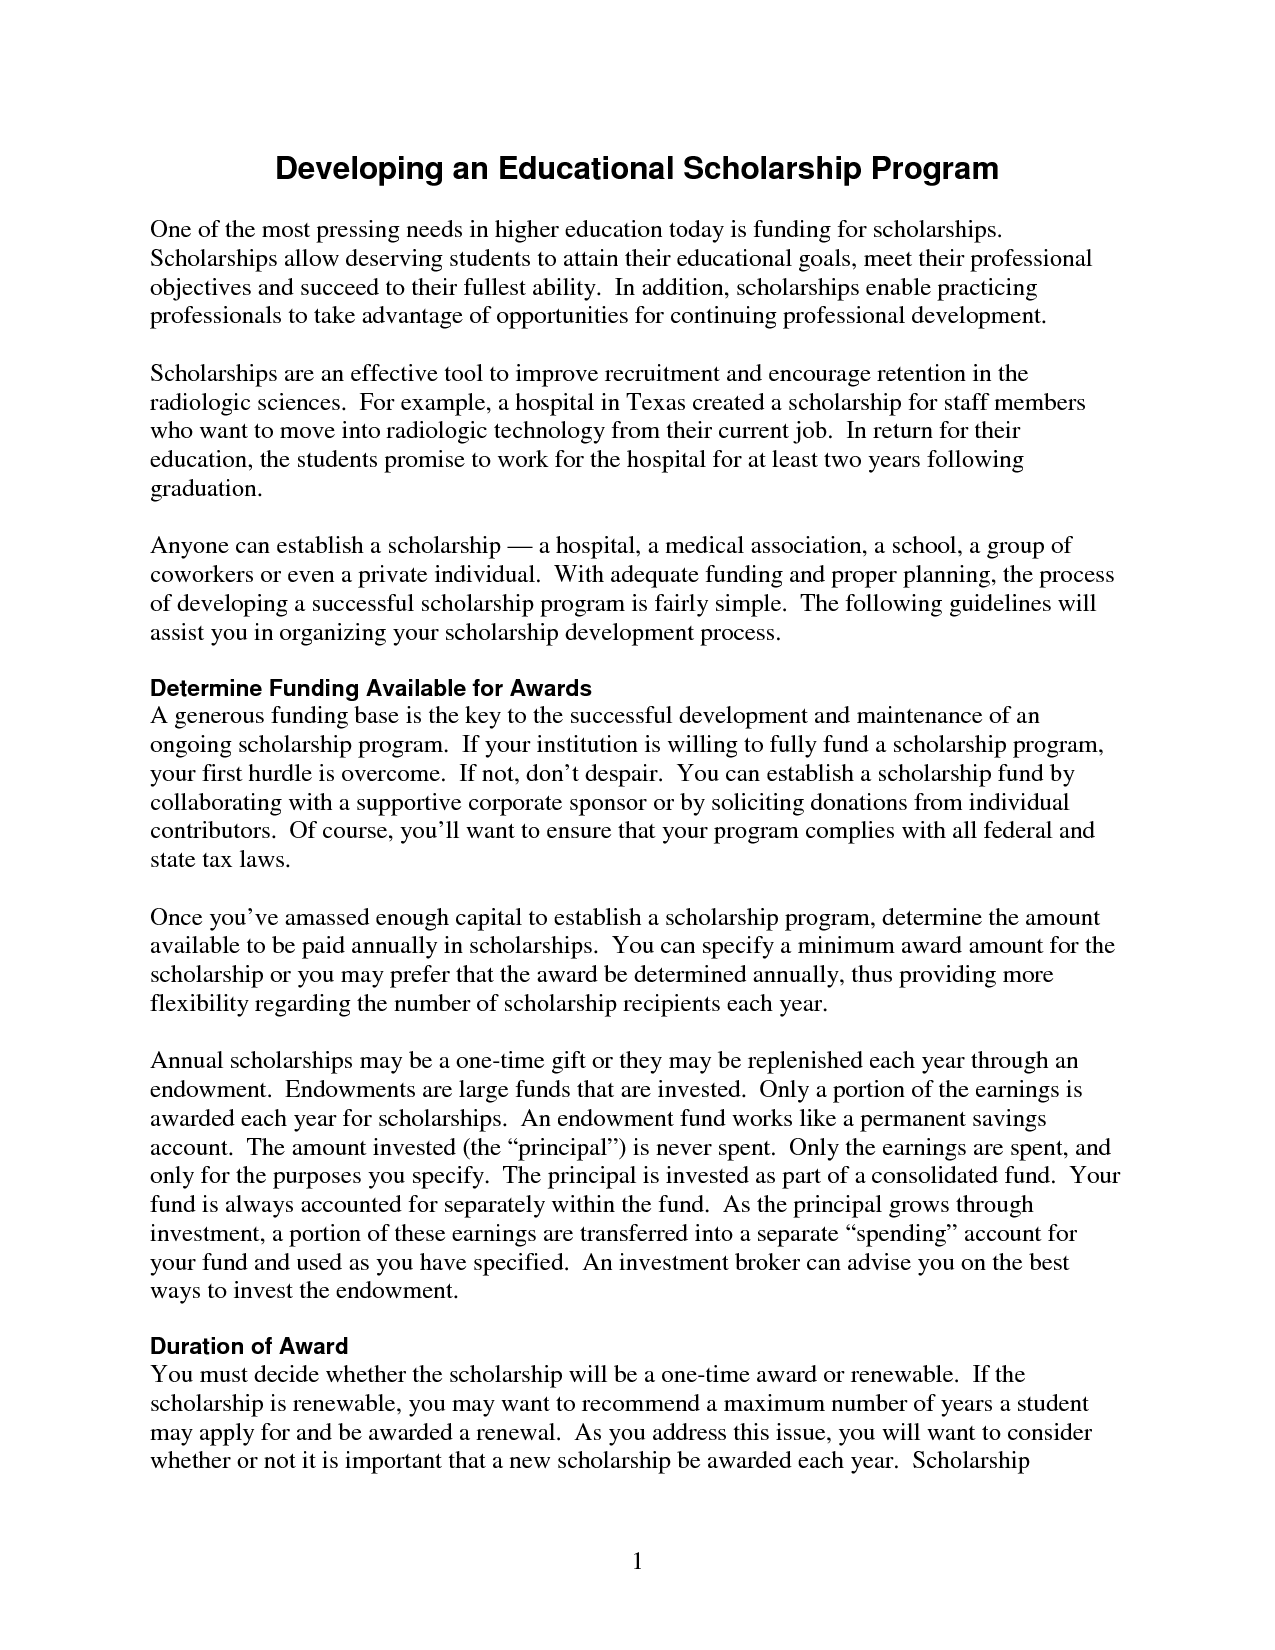 007 Essay On Why It Is Important To Time Student Examples L Example Of Scholarship Remarkable Essays For Nursing Writing College Students A About Yourself Full